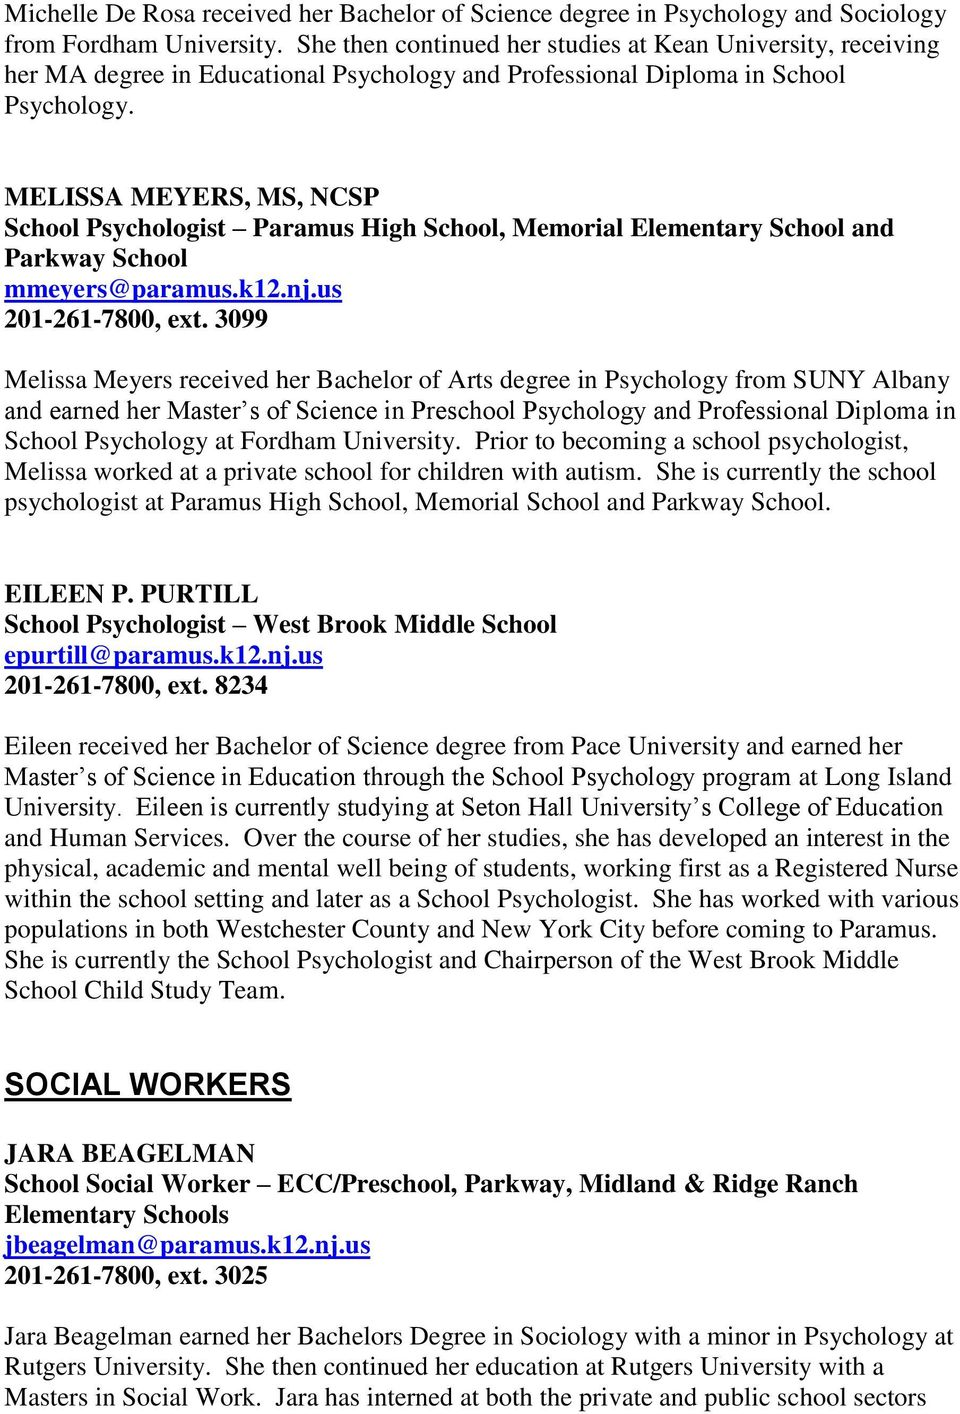 MELISSA MEYERS, MS, NCSP School Psychologist Paramus High School, Memorial Elementary School and Parkway School mmeyers@paramus.k12.nj.us 201-261-7800, ext.